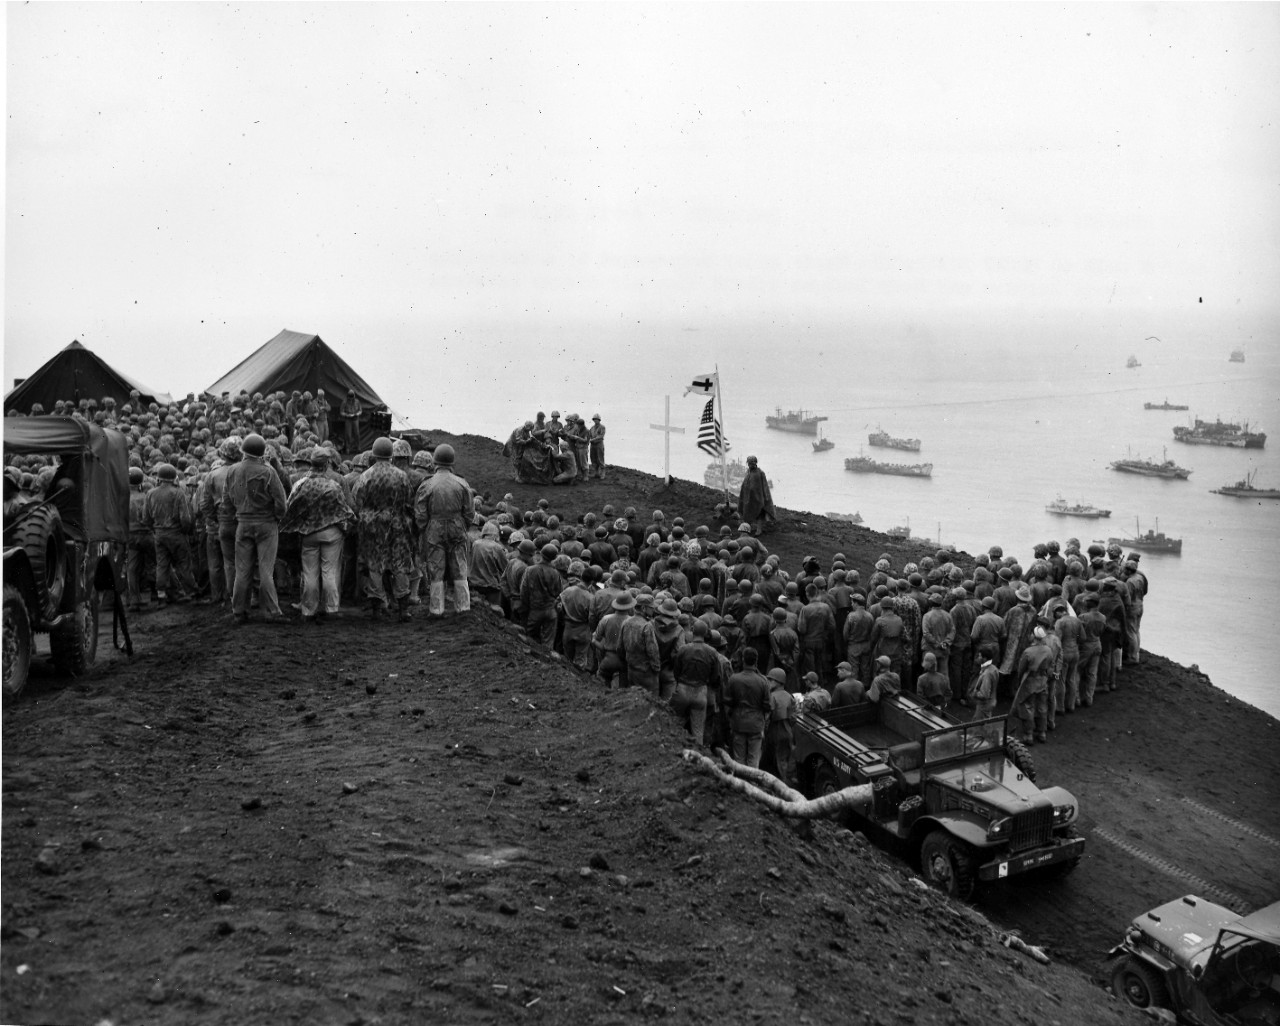 <p>Their ardor undampened by a drizzling rain, Marines and Navy Seabees attend open-air divine services atop Mount Suribachi on blood-stained Iwo Jima. Covered by a poncho, a small organ provides musical accompaniment while a small choir sings hymns. Even as Chaplain Alvo Martin conducted these Easter services, on 1 April, fellow Marines and Army troops were swarming ashore on Okinawa, hundreds of miles away.</p>